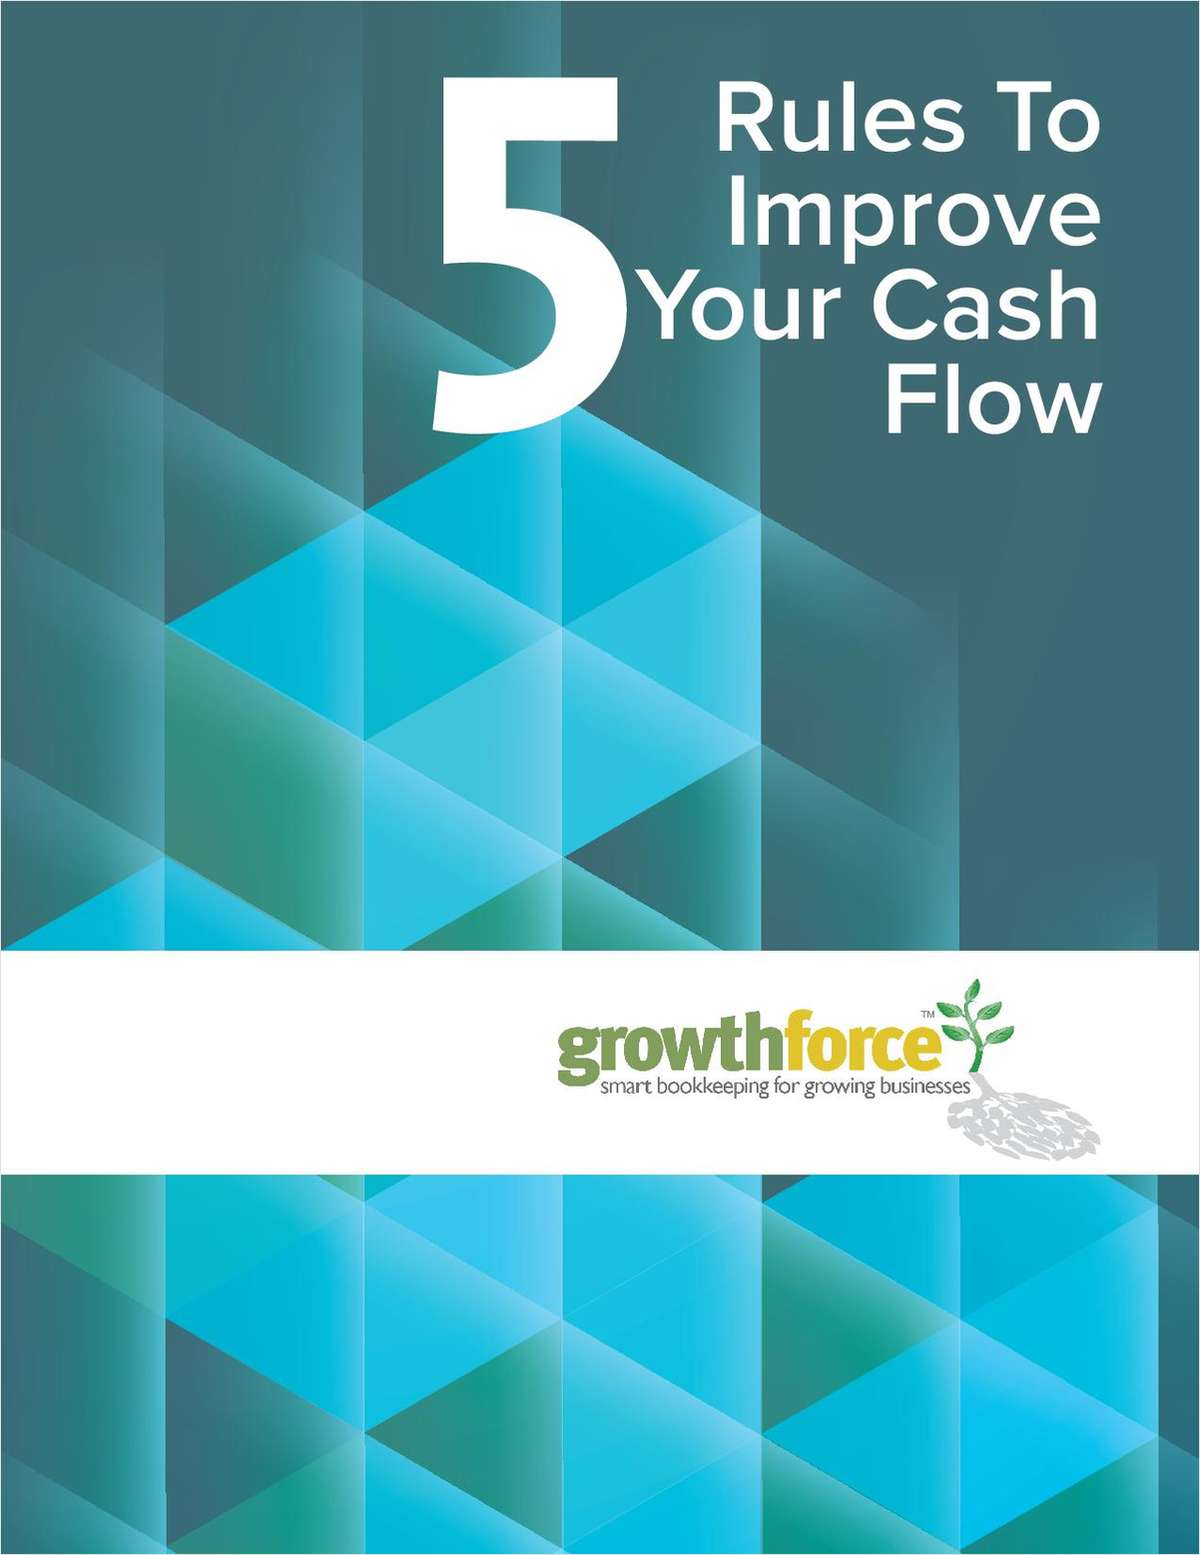 5 Rules to Improve Your Cash Flow